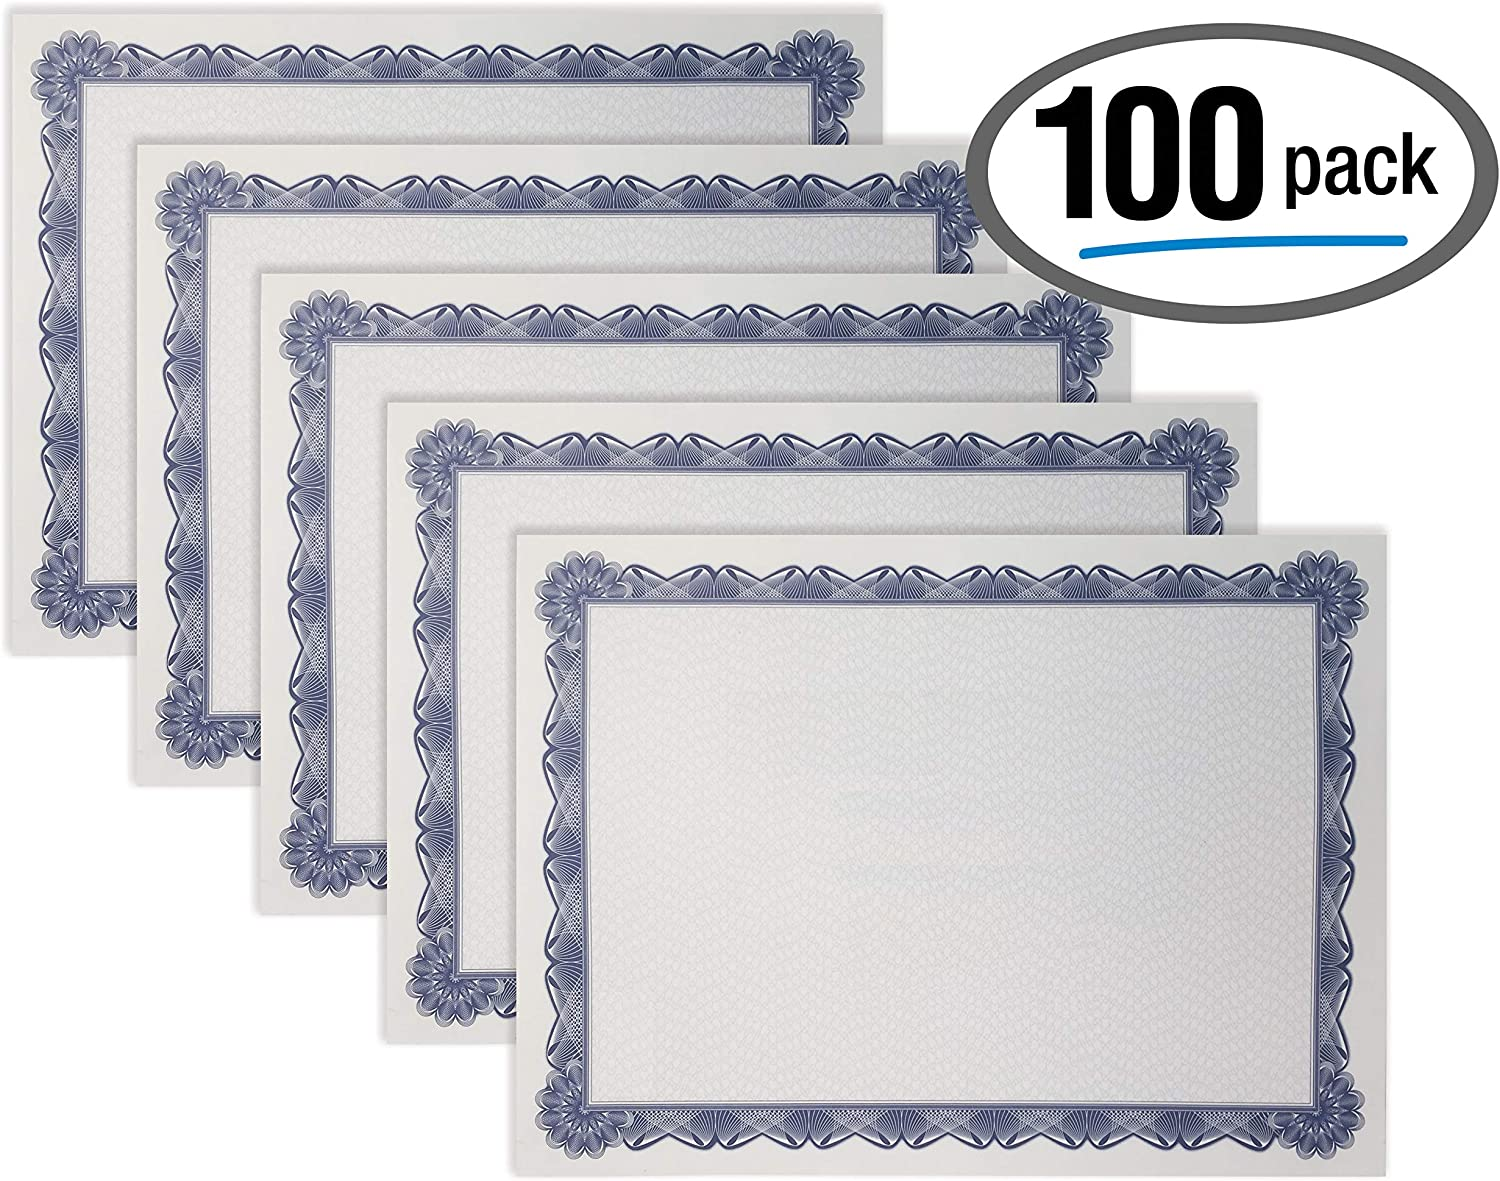 100 Sheet Certificate Paper, Blue Border, Letter Size Blank Paper, by Better Office Products, Specialty Award, Diploma Certificate Paper, Laser and Inkjet Printer Friendly, 8.5 x 11 Inches, 100 Count